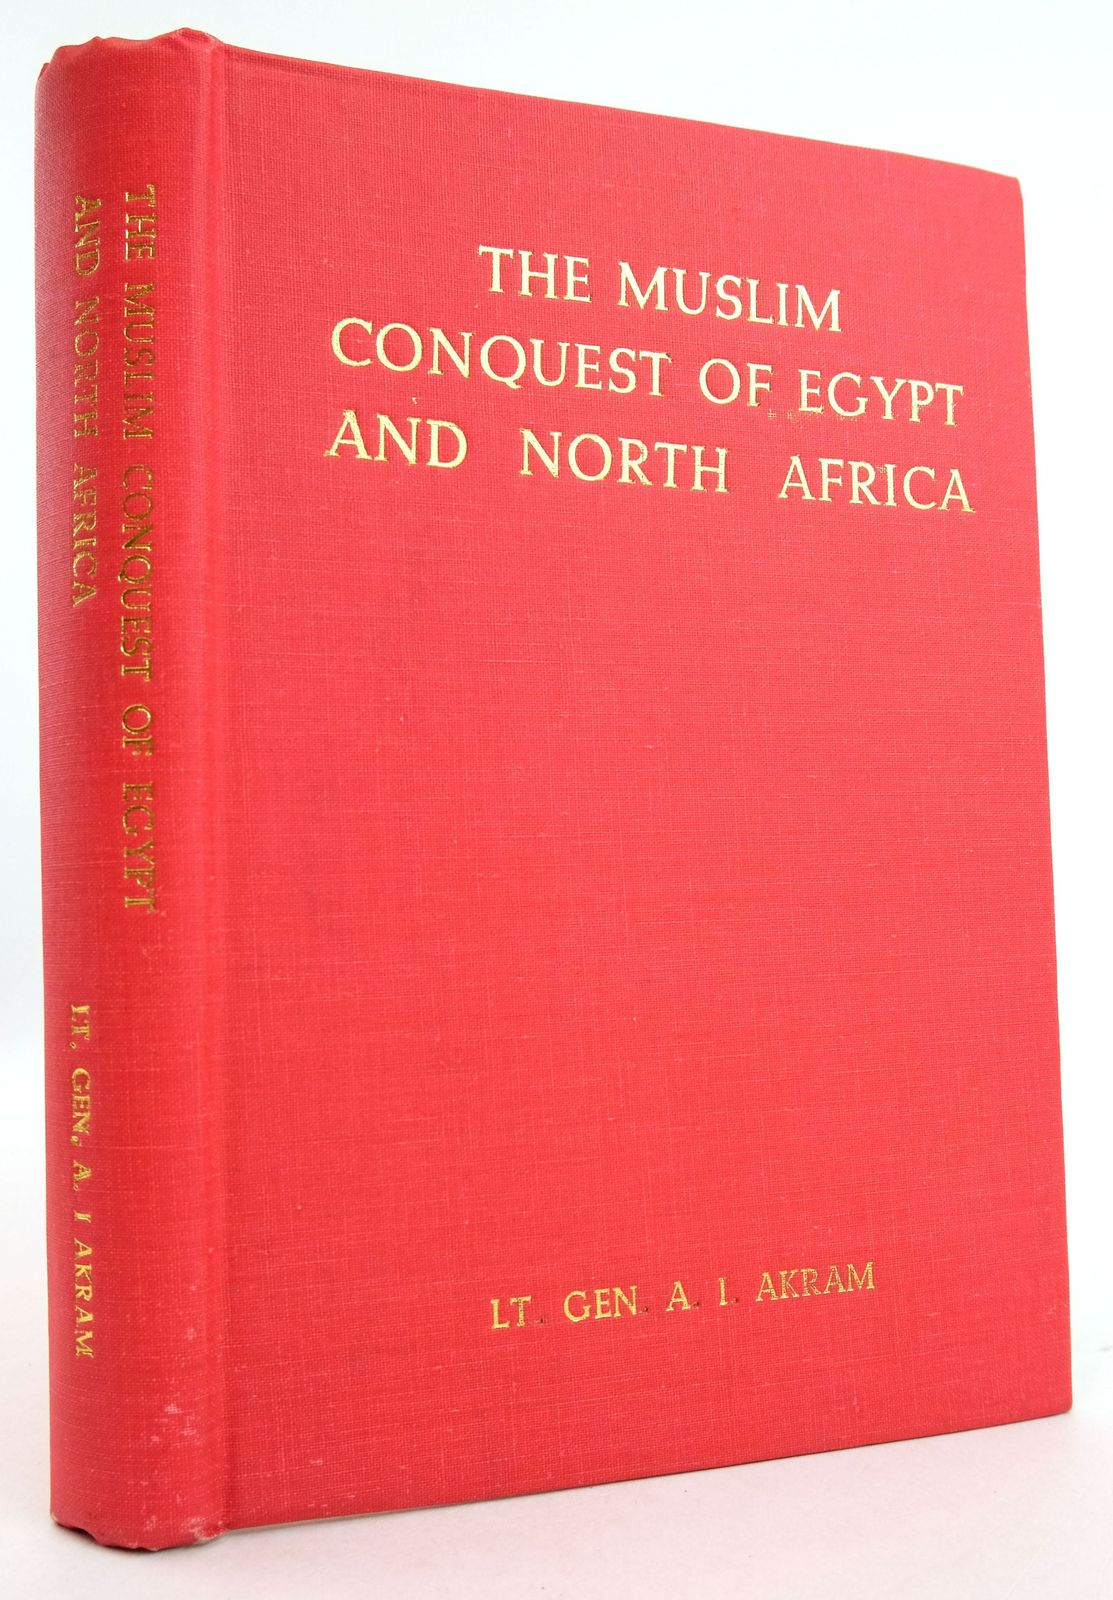 Photo of THE MUSLIM CONQUEST OF EGYPT AND NORTH AFRICA- Stock Number: 1819554